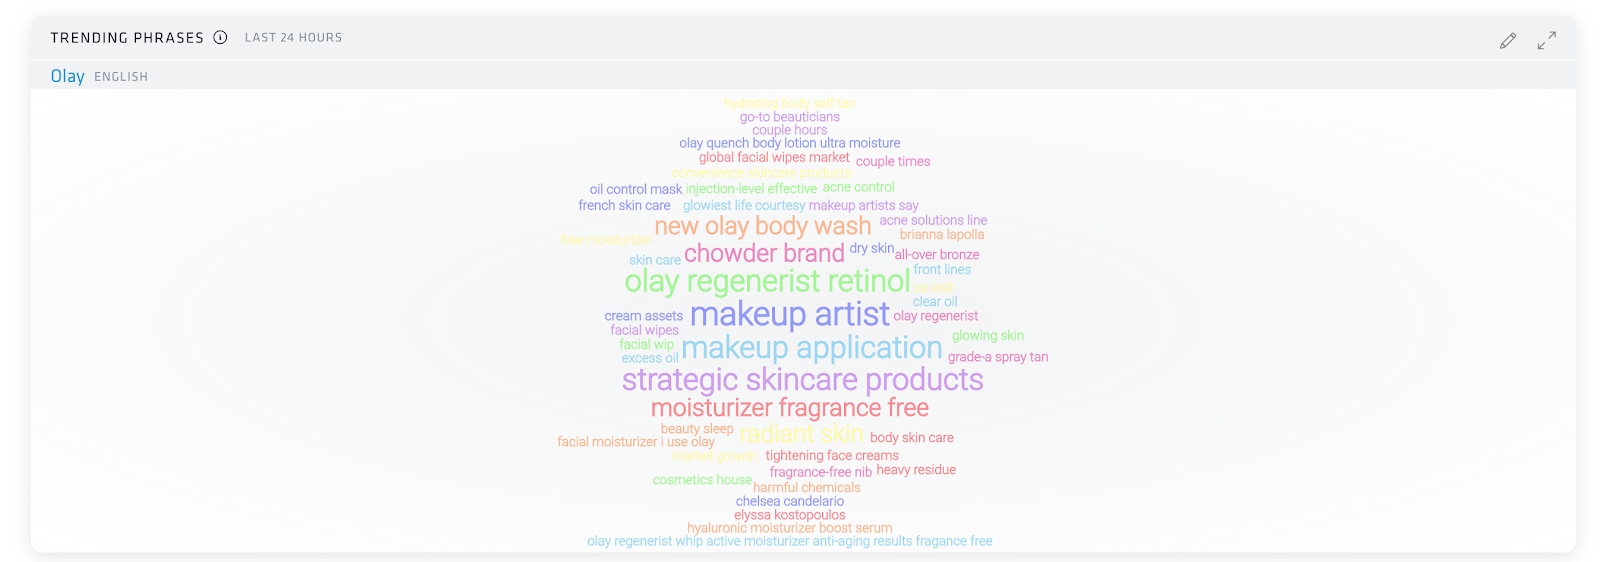 Nuvi's word cloud trending phrases dashboard shows a cluster of phrases that have been most popular on Nuvi's Olay monitor for the past 24 hours. Some of the big ones are makeup artist, makeup application, olay regenerist retinol, and strategic skincare products